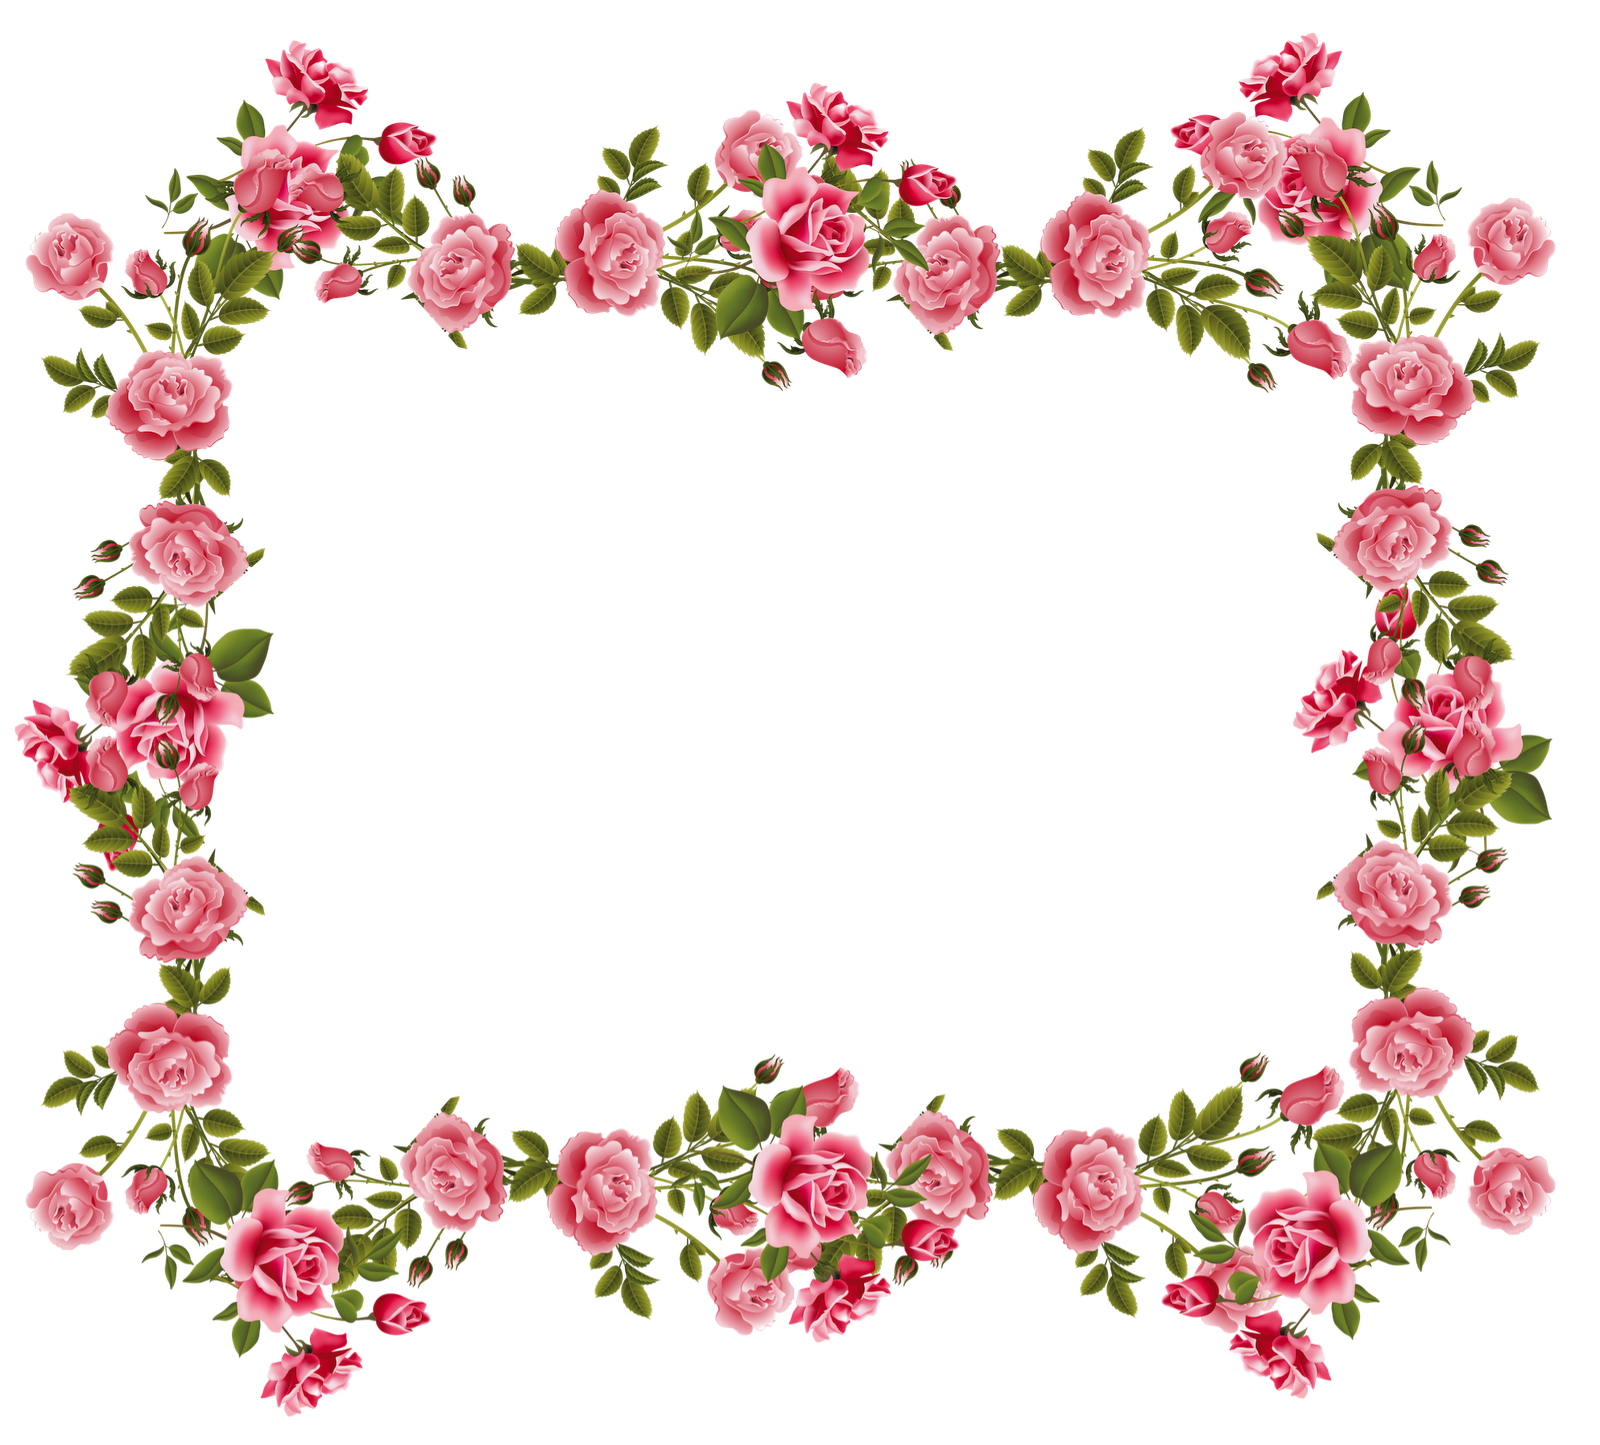 Vintage Rose Corners Clipart - Clipart Kid